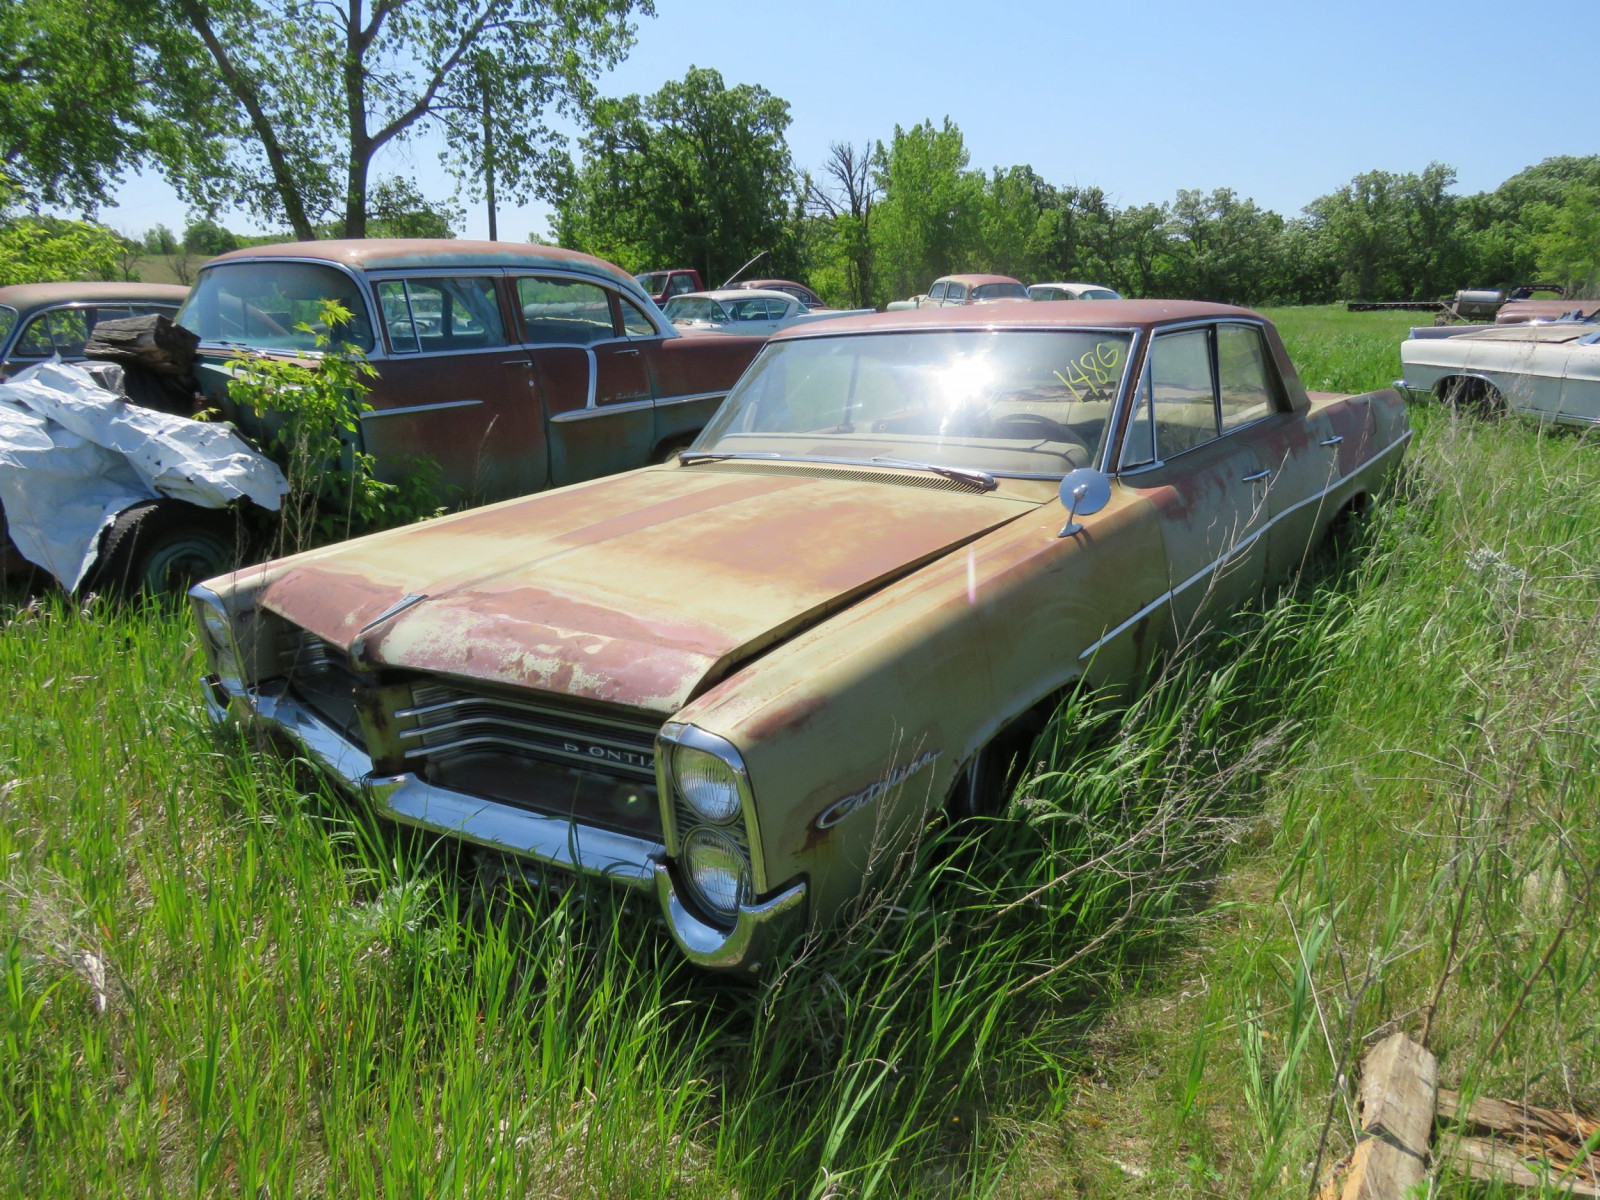 1964 Pontiac Catalina 4dr Sedan for Project or parts - Image 1